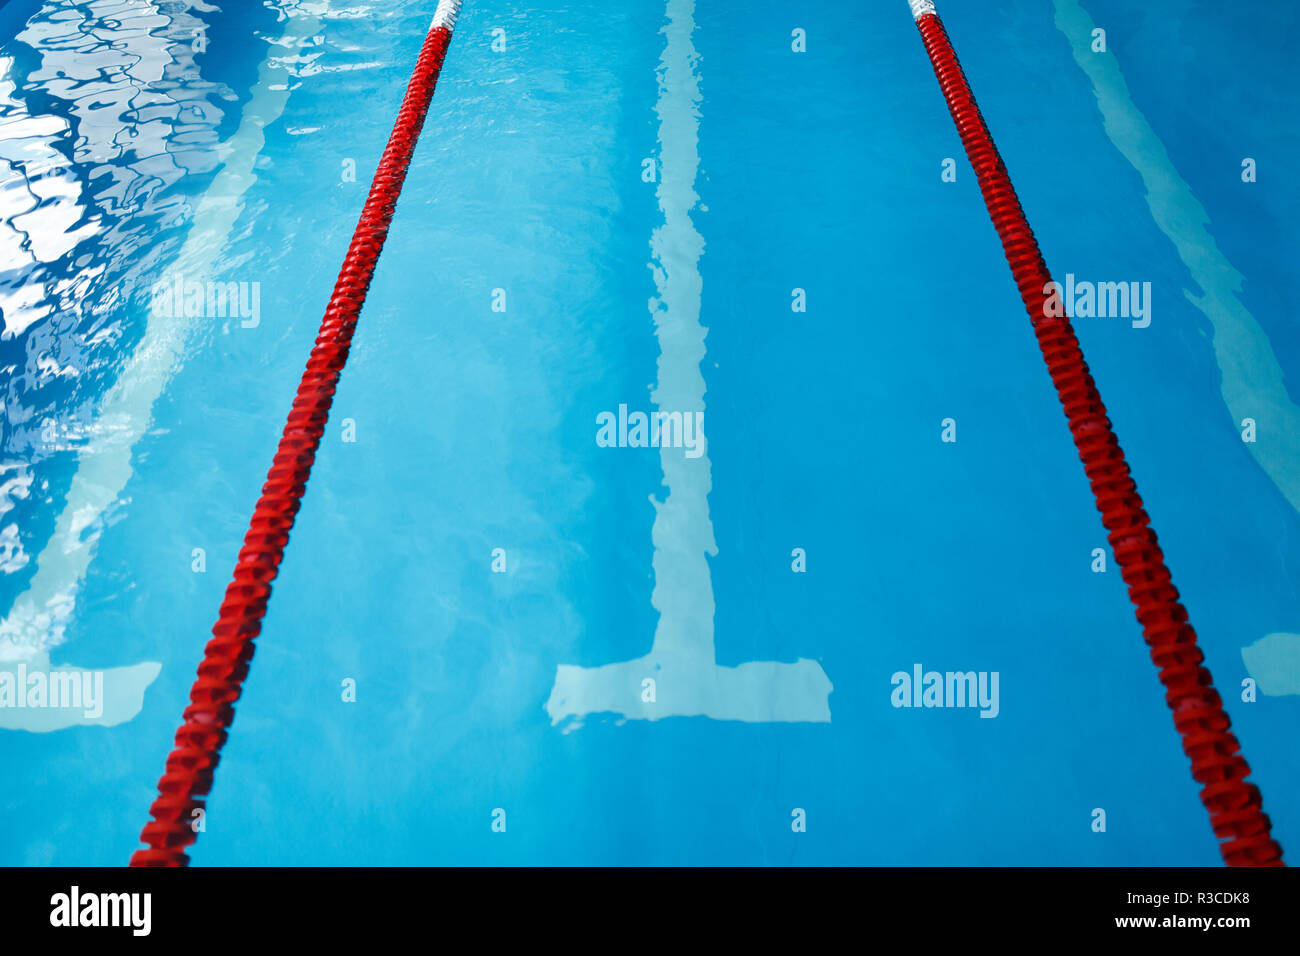 Photo from top of swimming pool with red dividers without ...